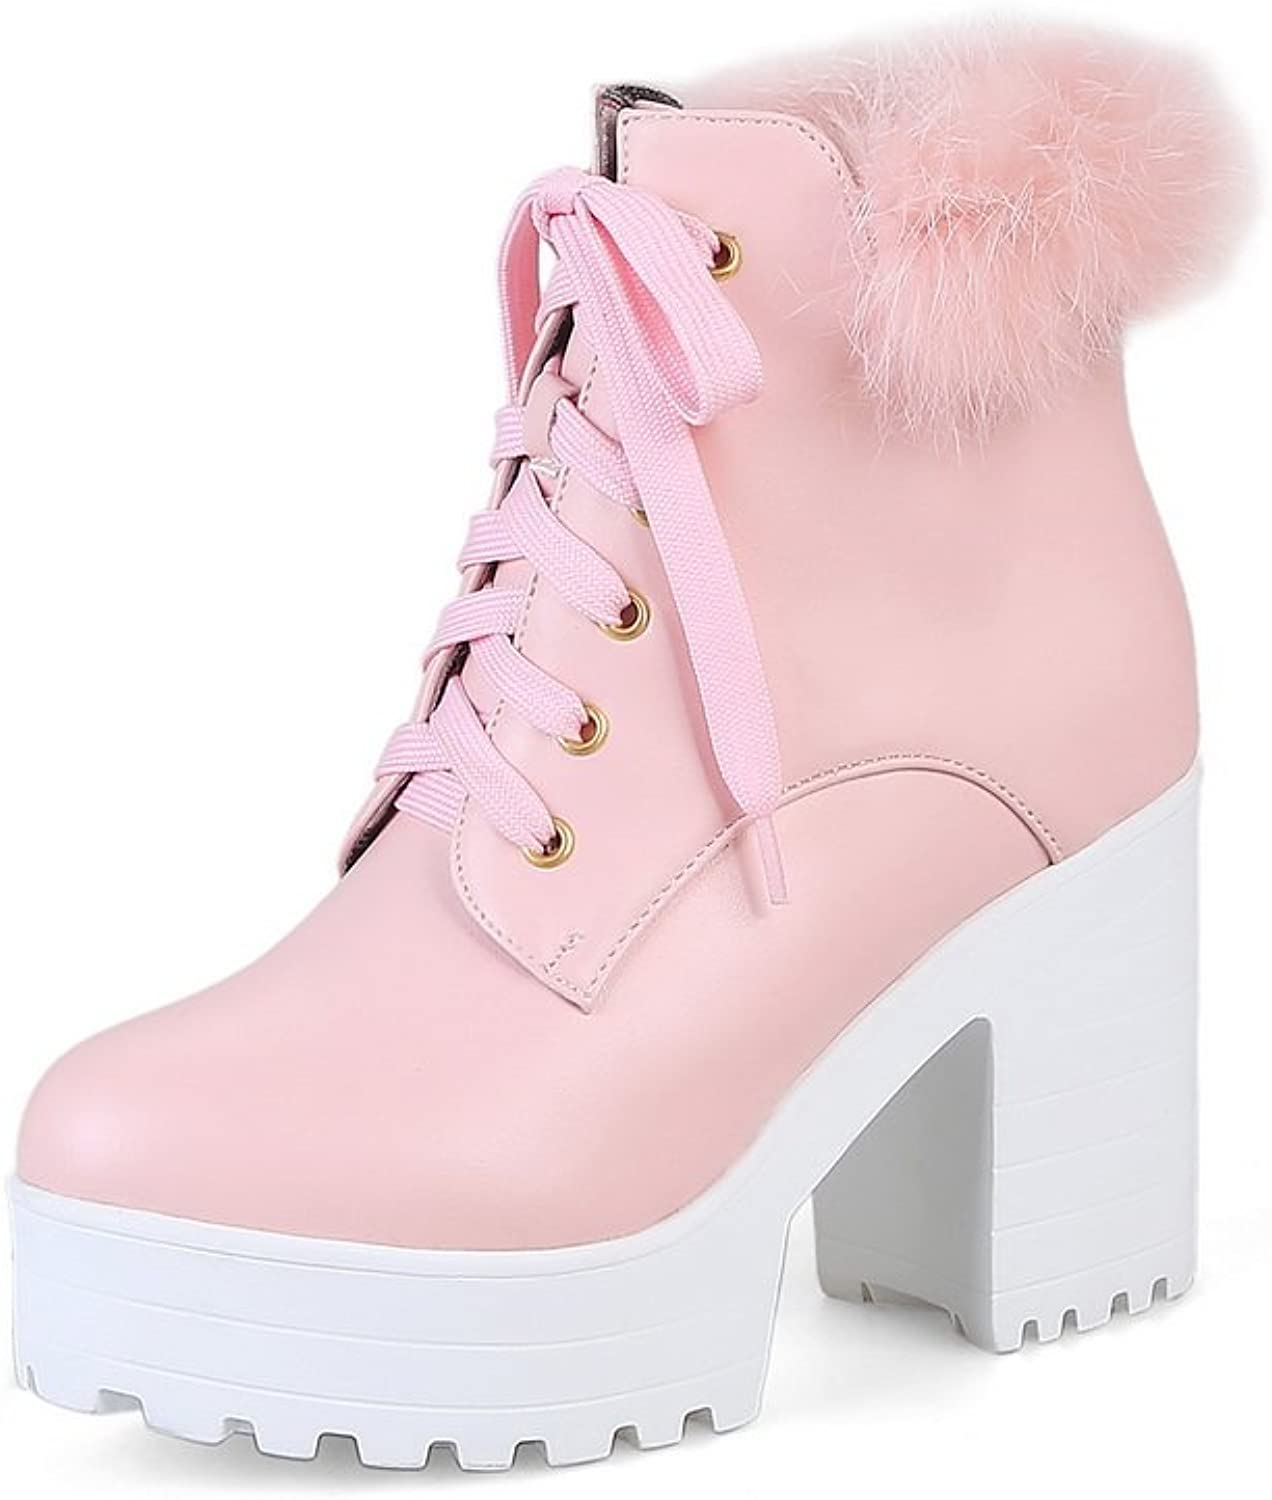 1TO9 Womens Boots Lace-Up Mid-Heel Waterproof Rubber Warm Lining Fringed Smooth Leather Fur-Lined Dress Urethane Boots MNS02554